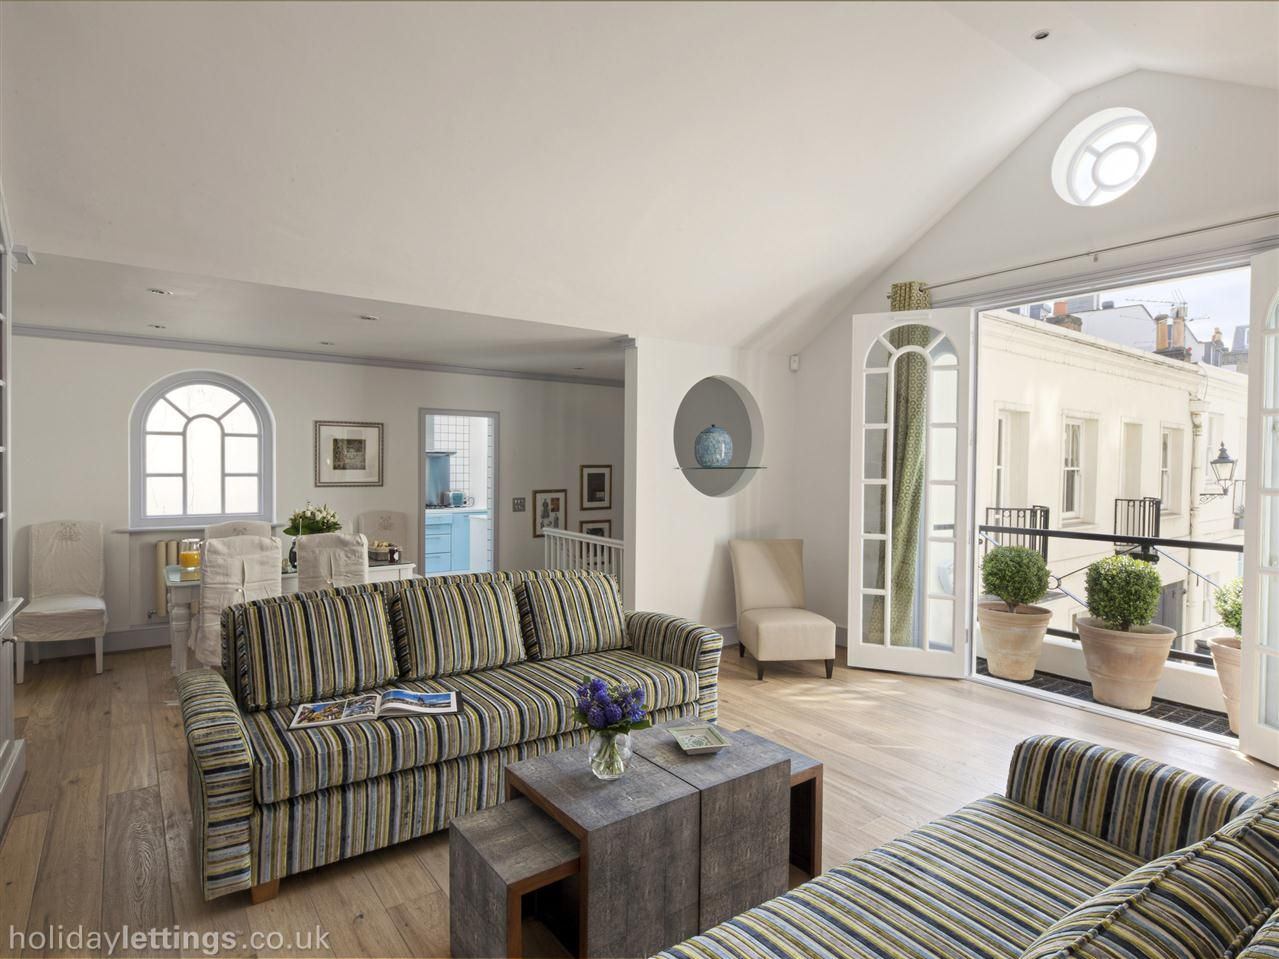 2 bedroom home in central london zone 1 to rent from 1553 pw with